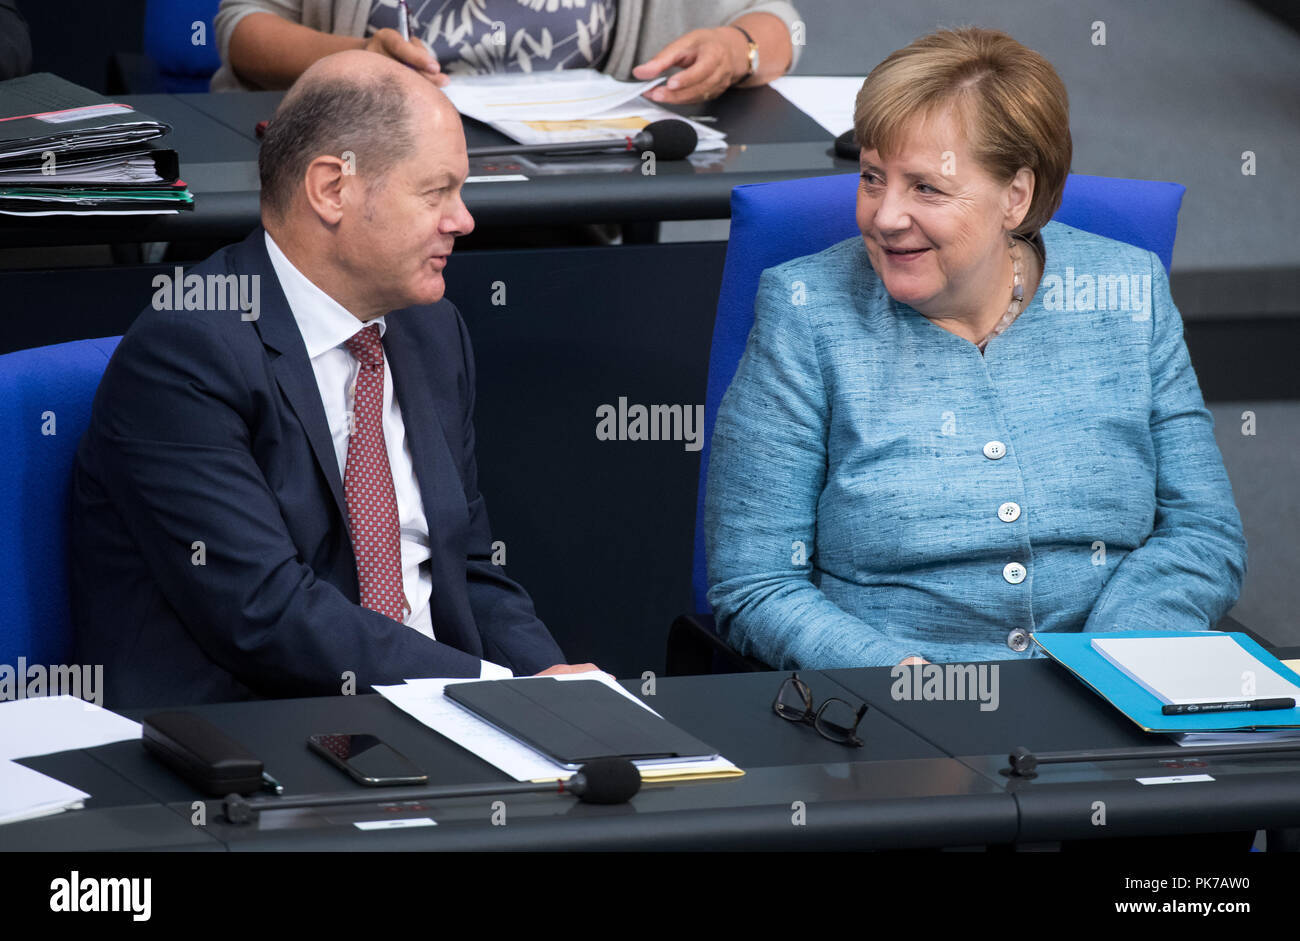 Berlin, Germany. 11 September 2018, Berlin: Chancellor Angela Merkel (r, CDU) and Olaf Scholz (SPD), Federal Minister of Finance, will talk during the plenary session in the German Bundestag. The main topic of the 47th session of the 19th legislative period is the Federal Government's draft budget 2019 and the federal budget 2018 to 2022. Photo: Bernd von Jutrczenka/dpa Credit: dpa picture alliance/Alamy Live News - Stock Image